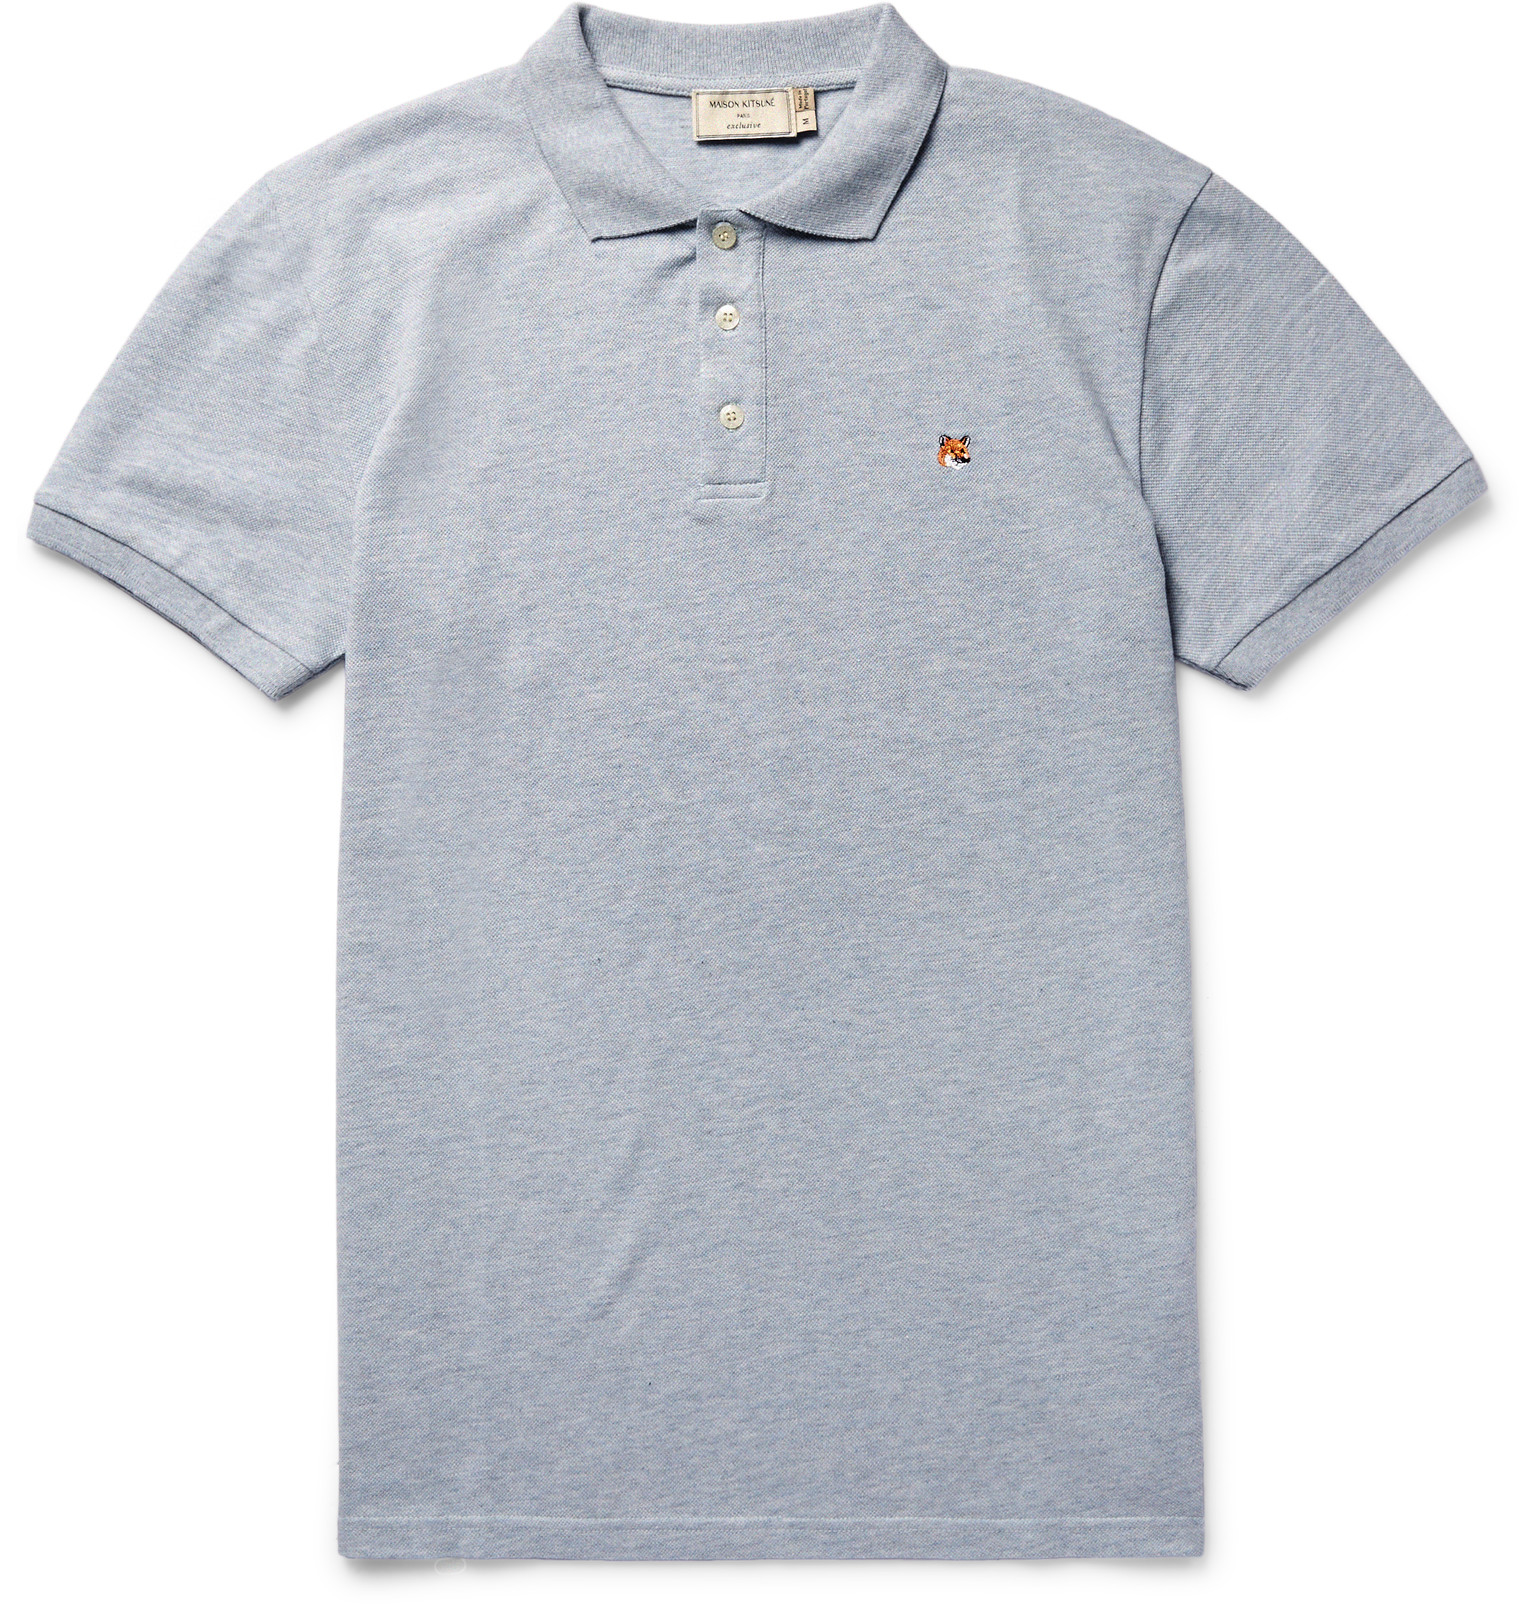 Maison Kitsun Slim Fit Cotton Piqu Polo Shirt In Blue